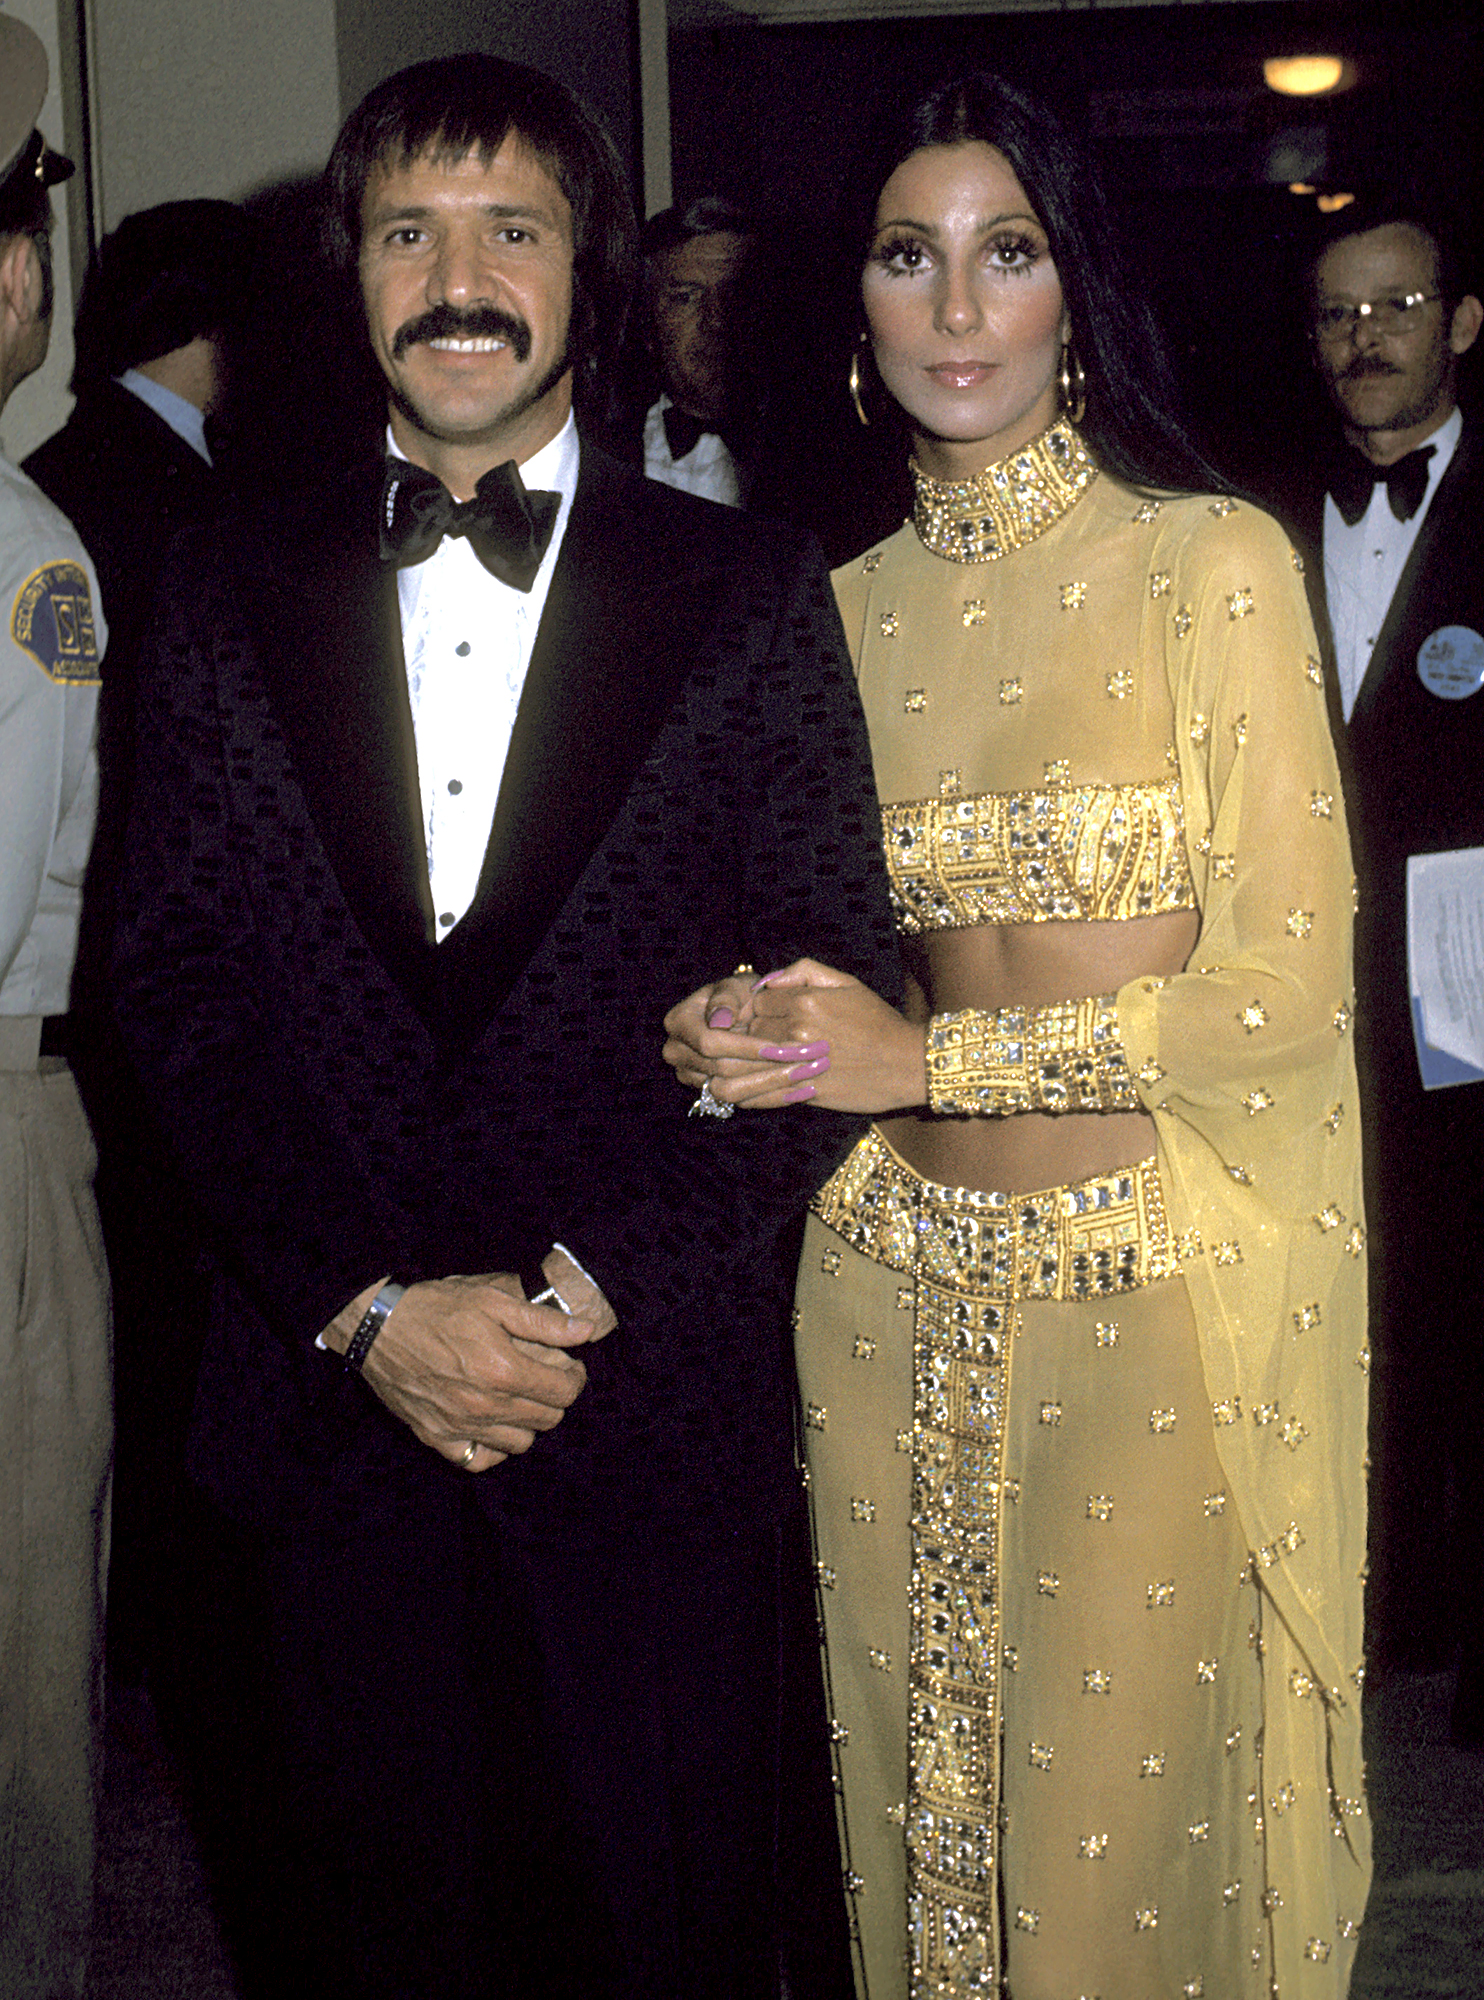 1973-Cher - With then-husband Sonny Bono at the 45th annual Oscars, Cher wore one of her most iconic looks designed by Bob Mackie — a sheer gold jewel gown that showed off her entire midriff.